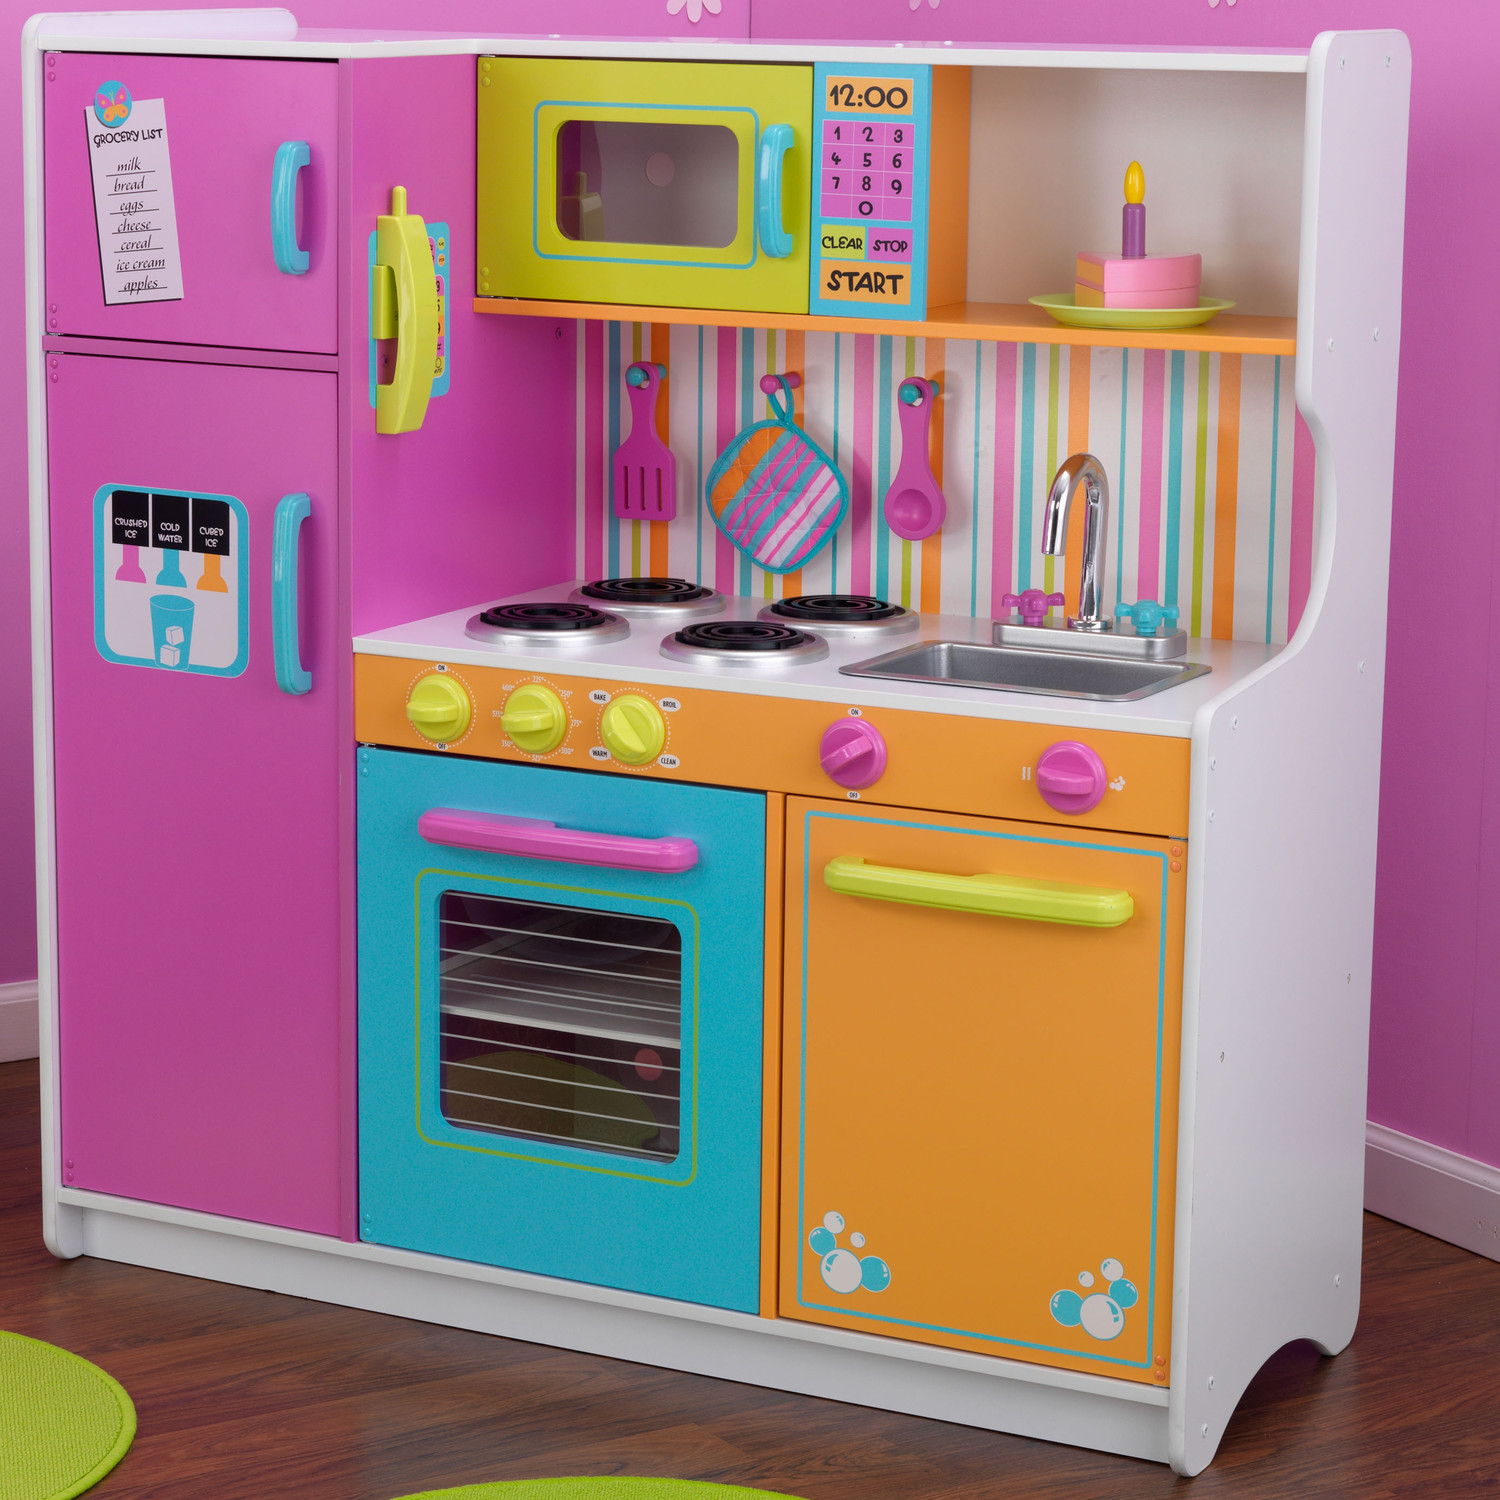 Large Play Kitchen: Indigo Canada Toy Sale: Save 59% Off KidKraft Deluxe